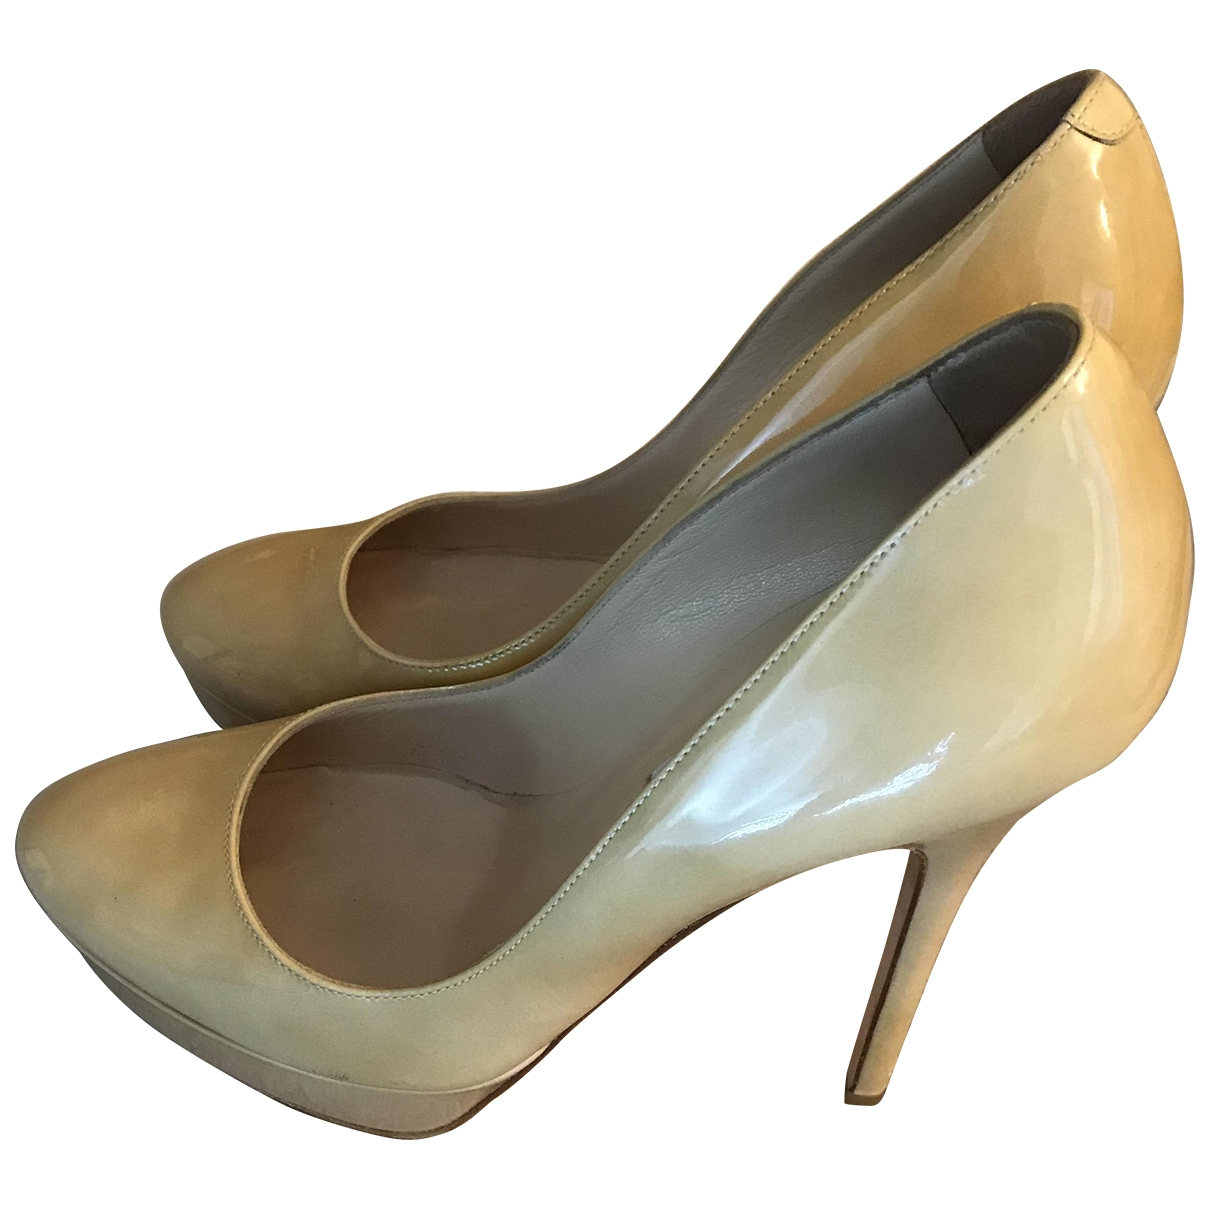 Jimmy Choo \N Beige Patent leather Heels for Women 36.5 EU